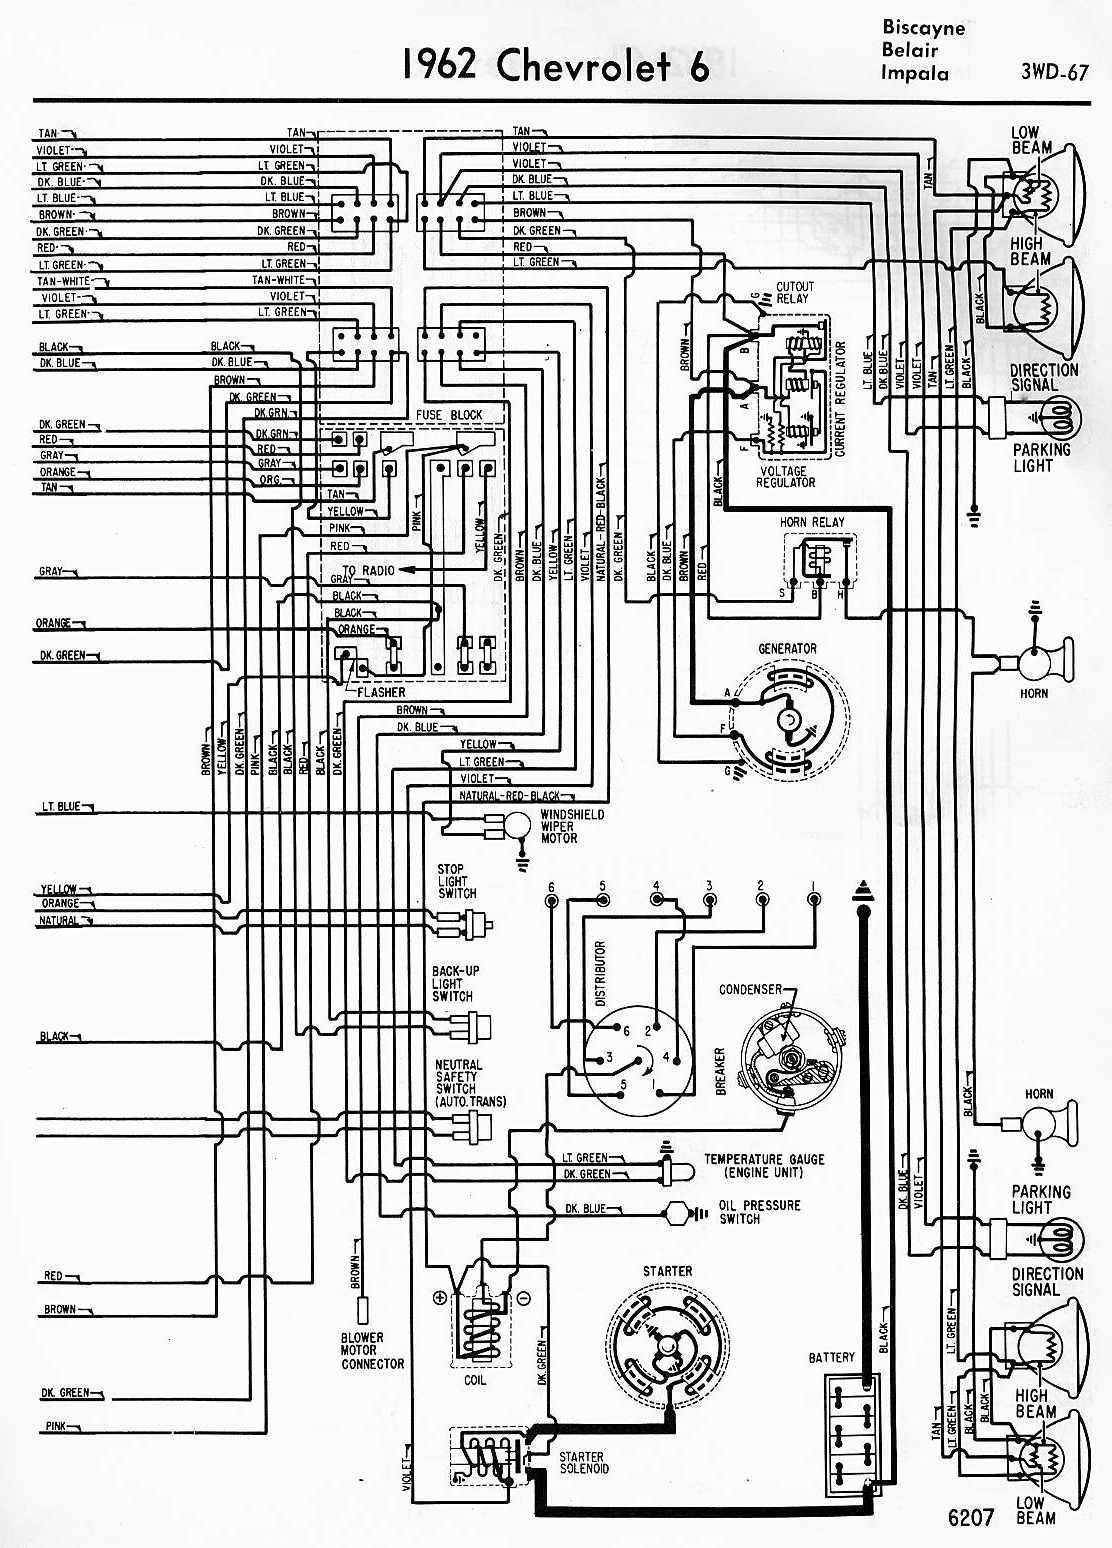 under dash wiring harness 1970 impala wiring diagram mega1970 impala wiring harness wiring diagram week 1970 [ 1112 x 1548 Pixel ]